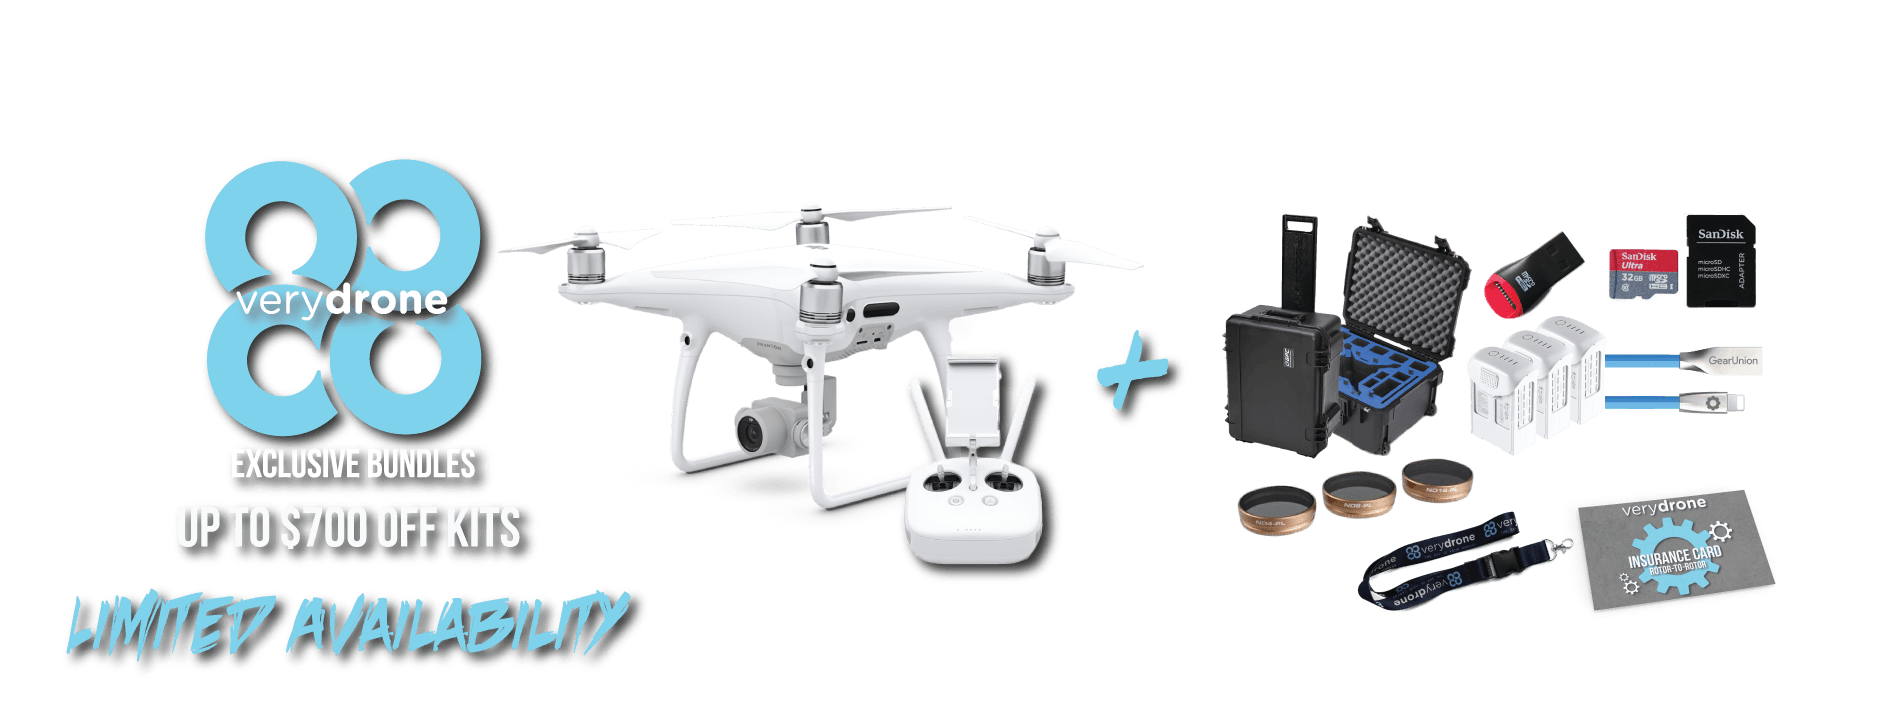 BUNDLE-exclusive-cheap-prices-cheaper-dji-drone-kit-accessories-package